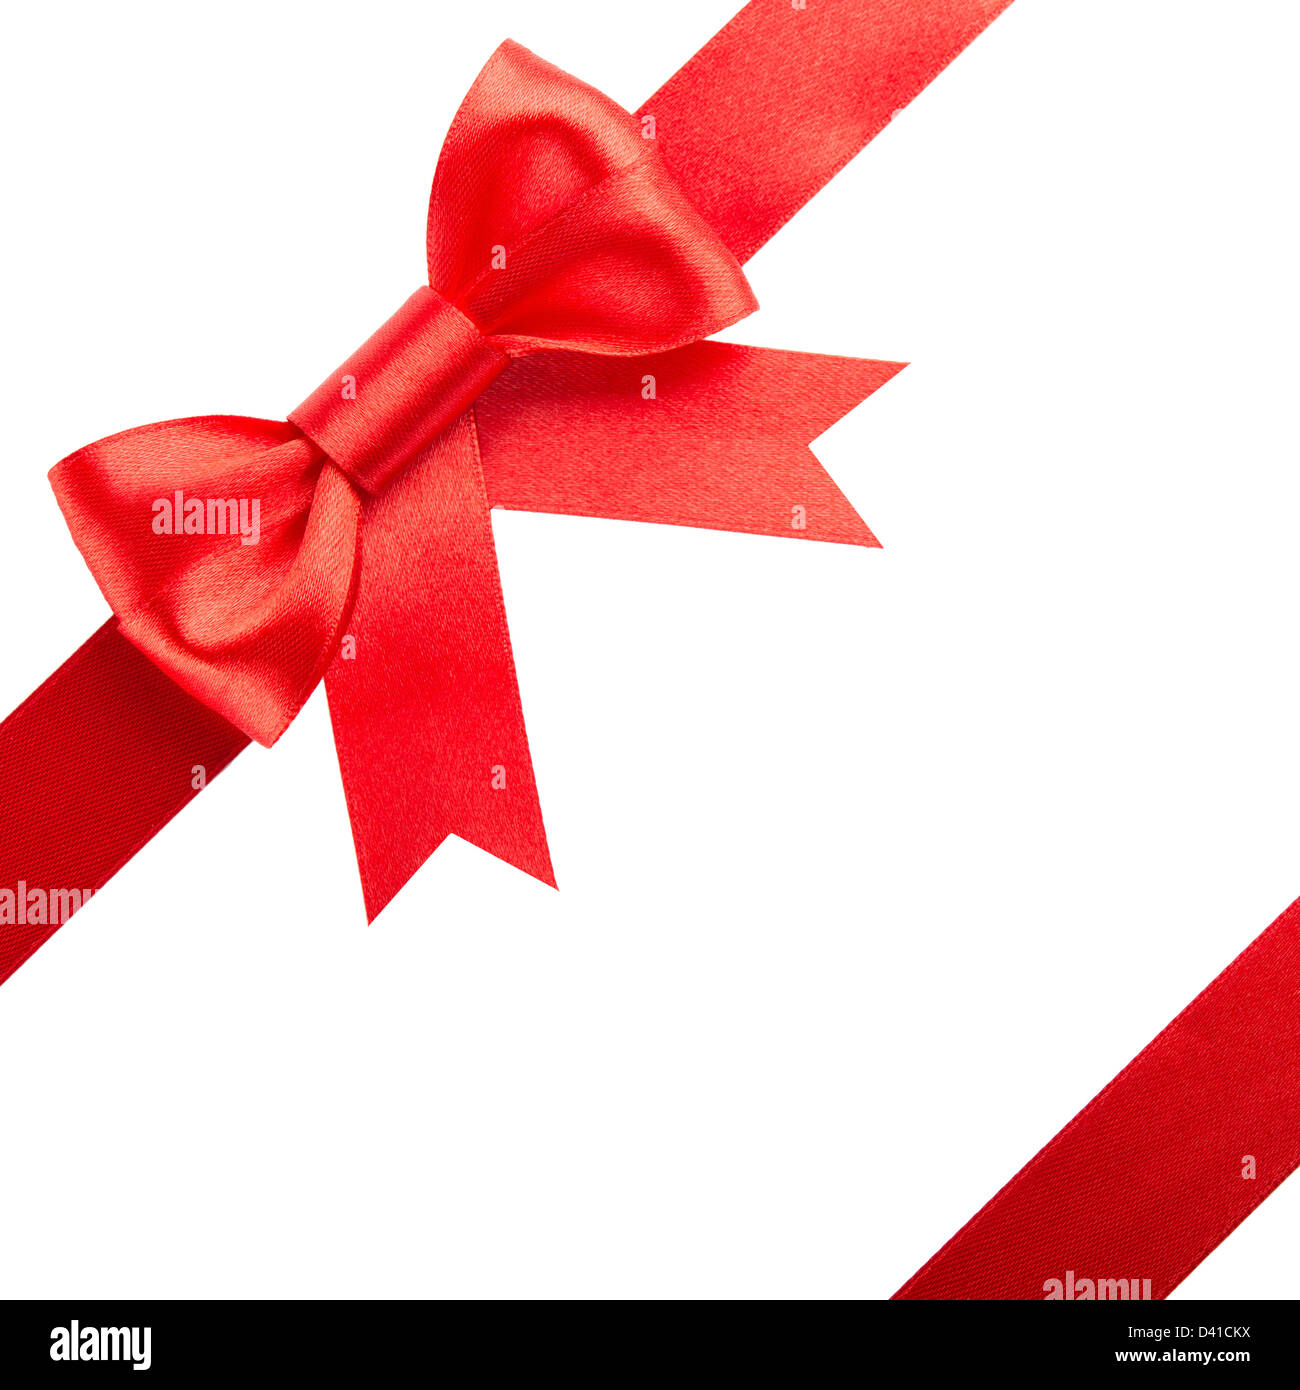 Red bow and ribbons isolated on white background - Stock Image